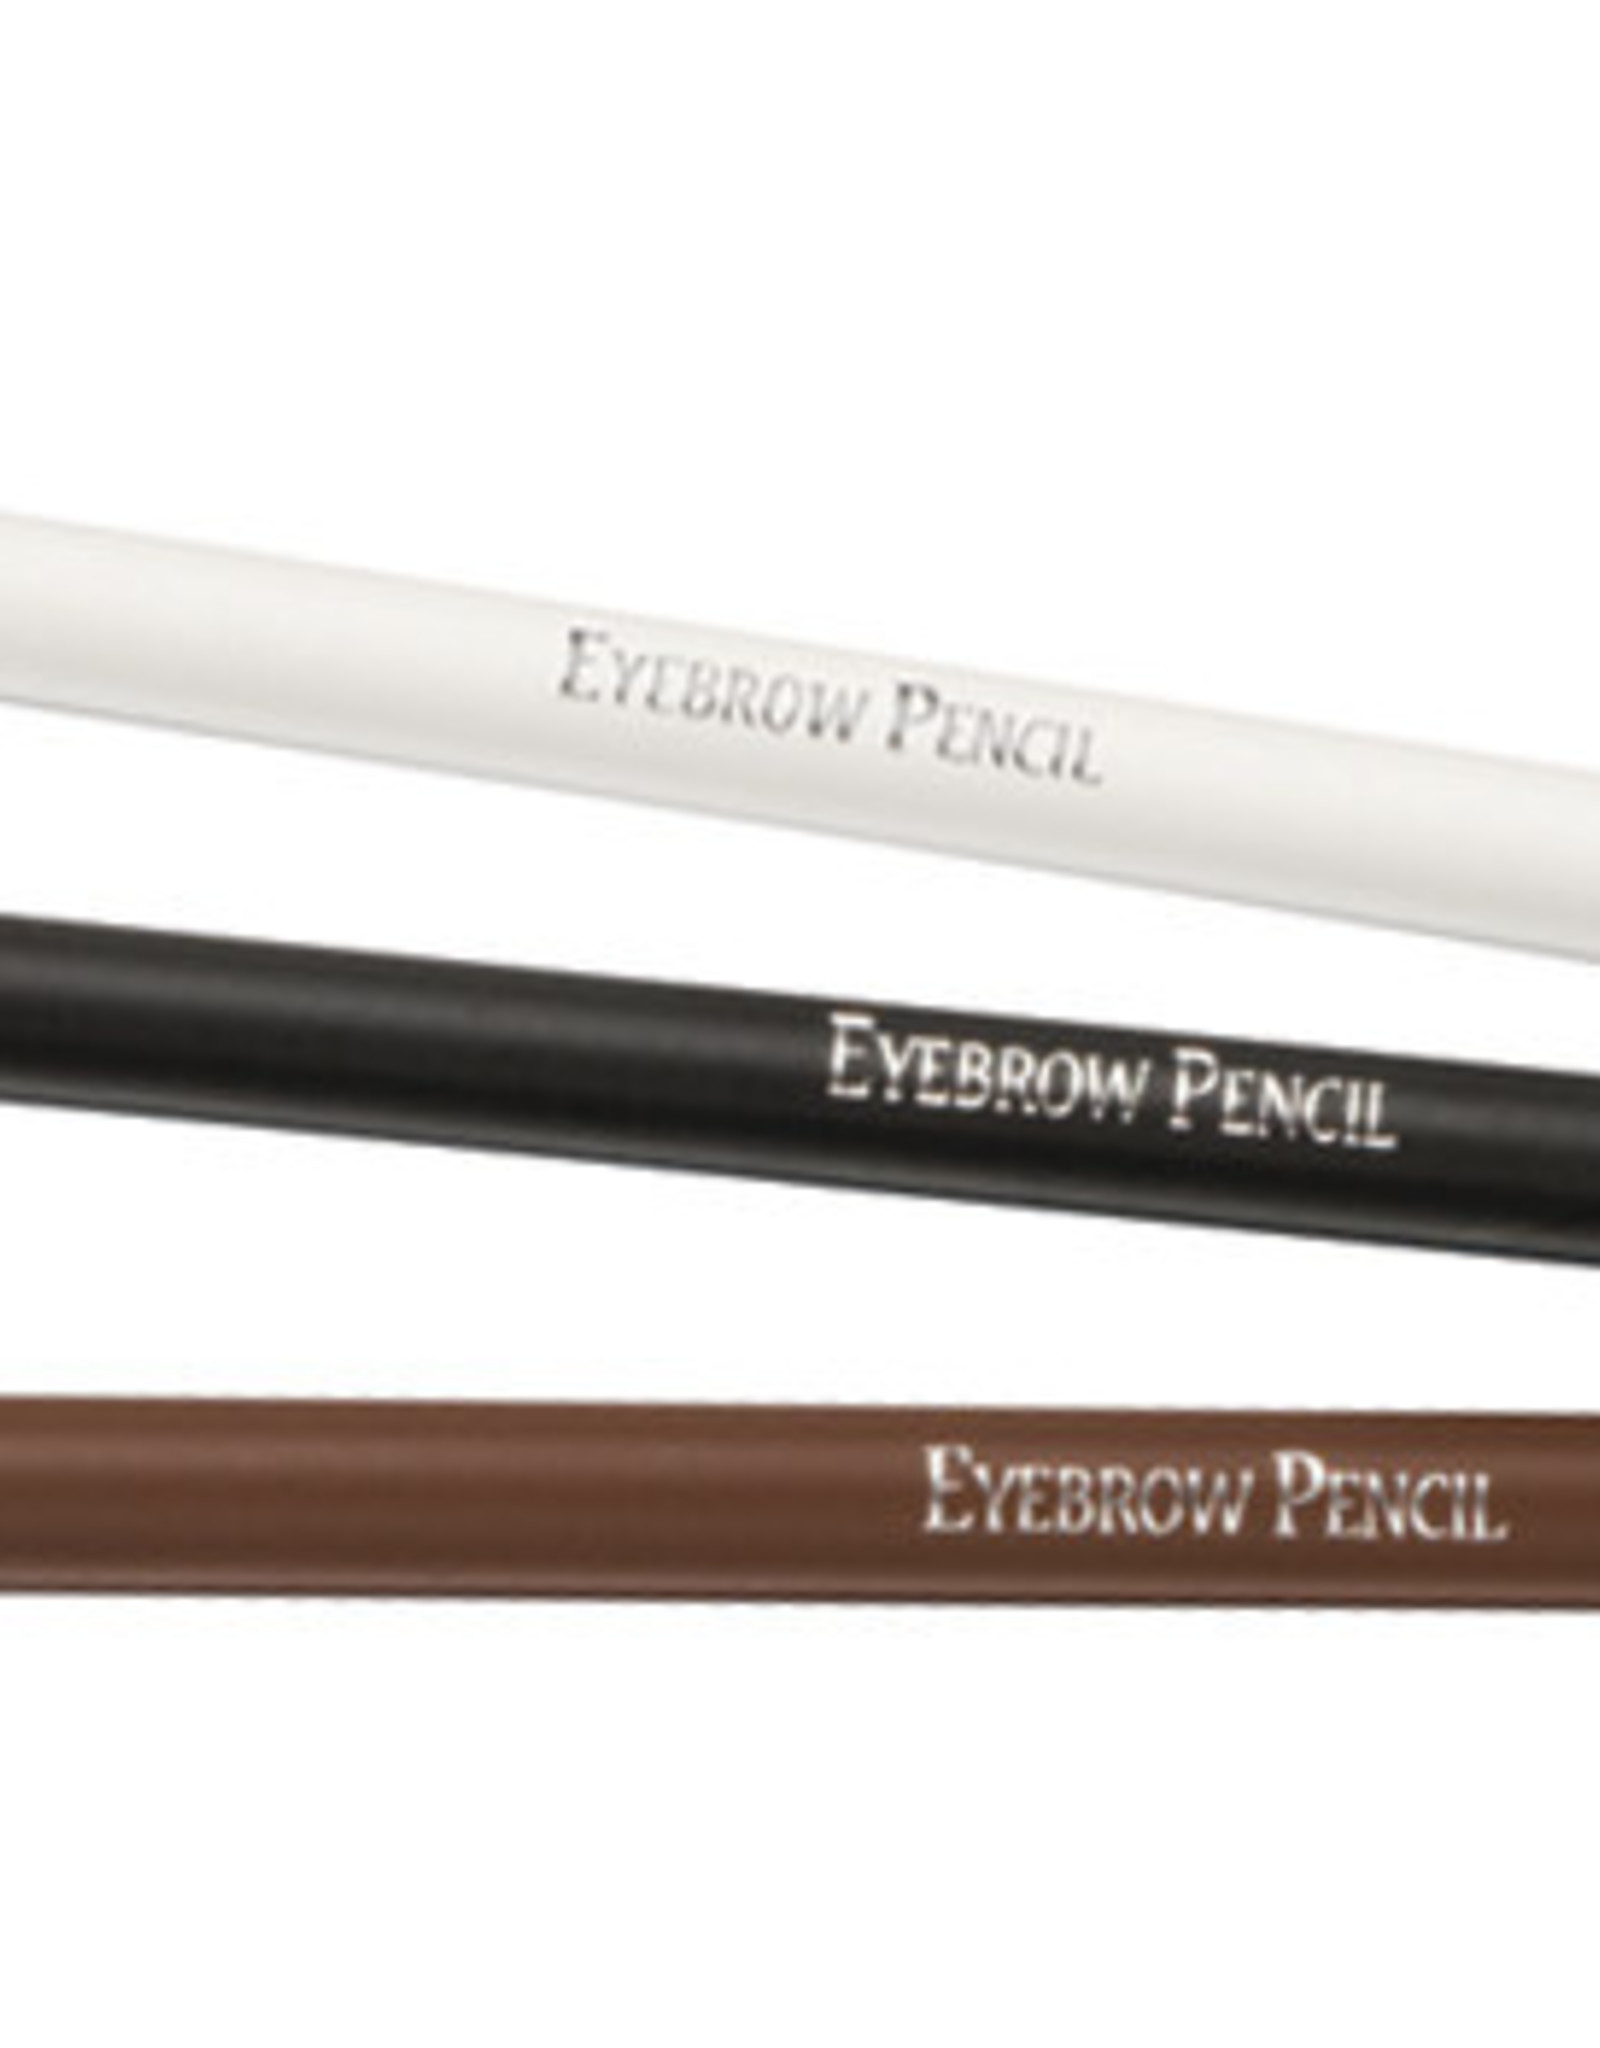 Ben Nye EYEBROW PENCIL, BLACK, .05 OZ